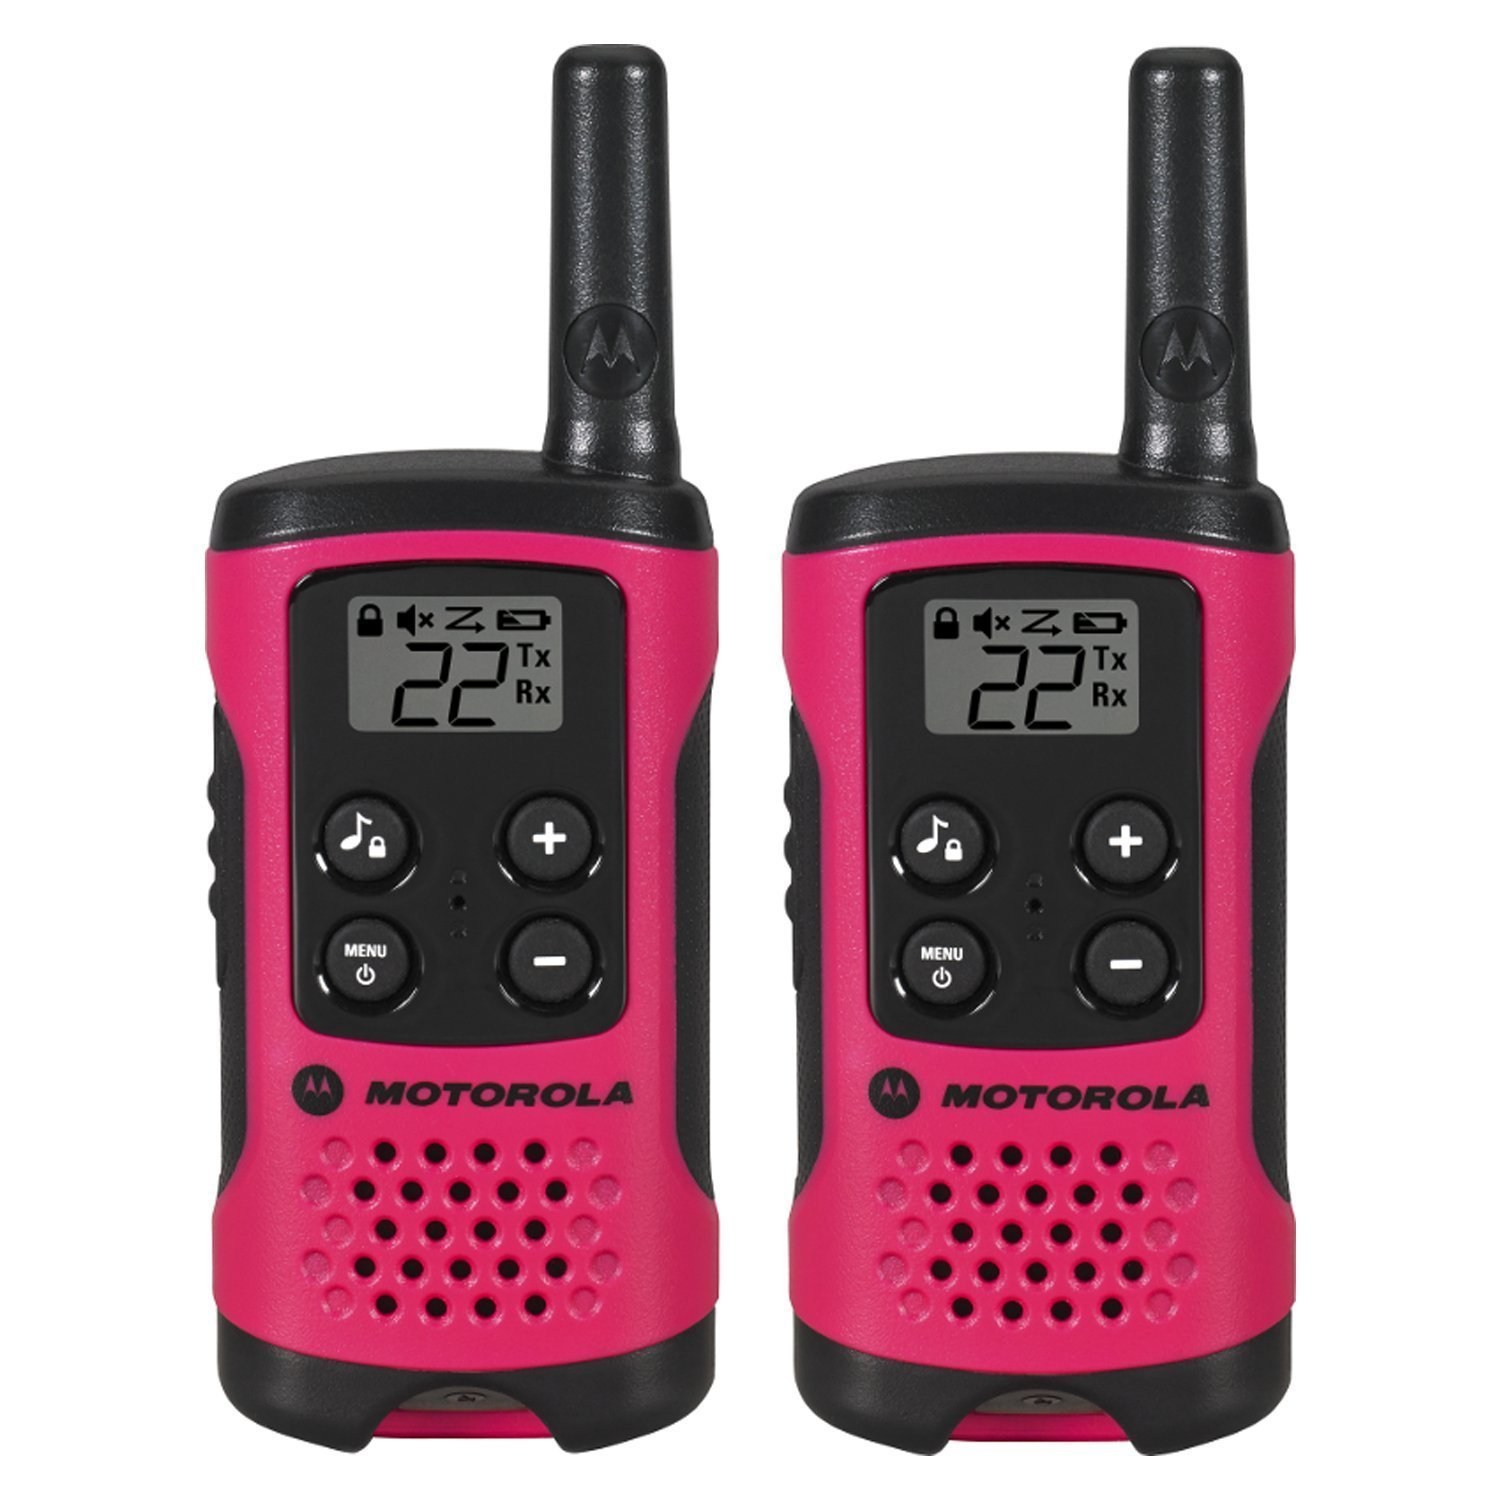 Wireless Walkie Talkies, Motorola Talkabout T107 Pink Radio Walkie Talkies,  2